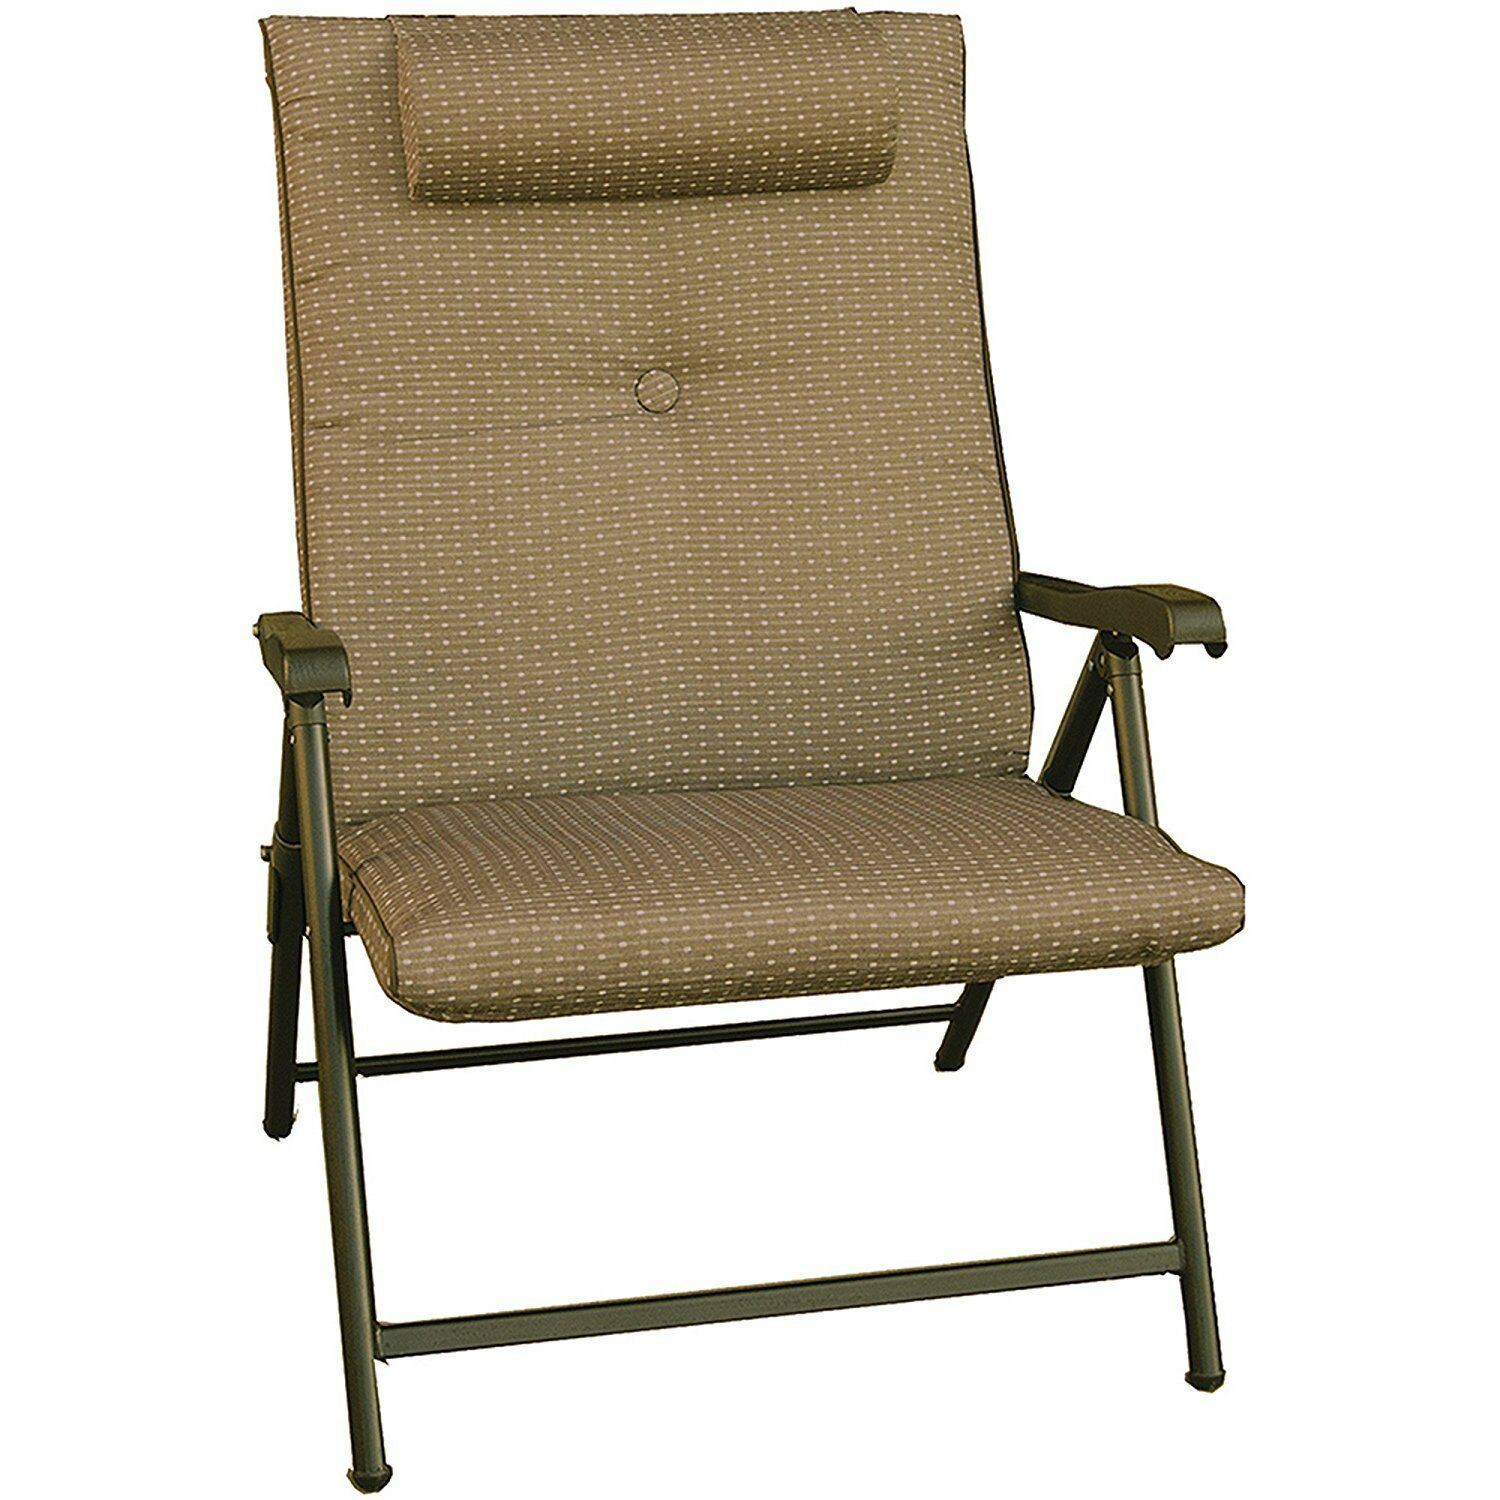 Prime Products 13-3375 Folding Chair, Desert Taupe CLEARANCE SALE